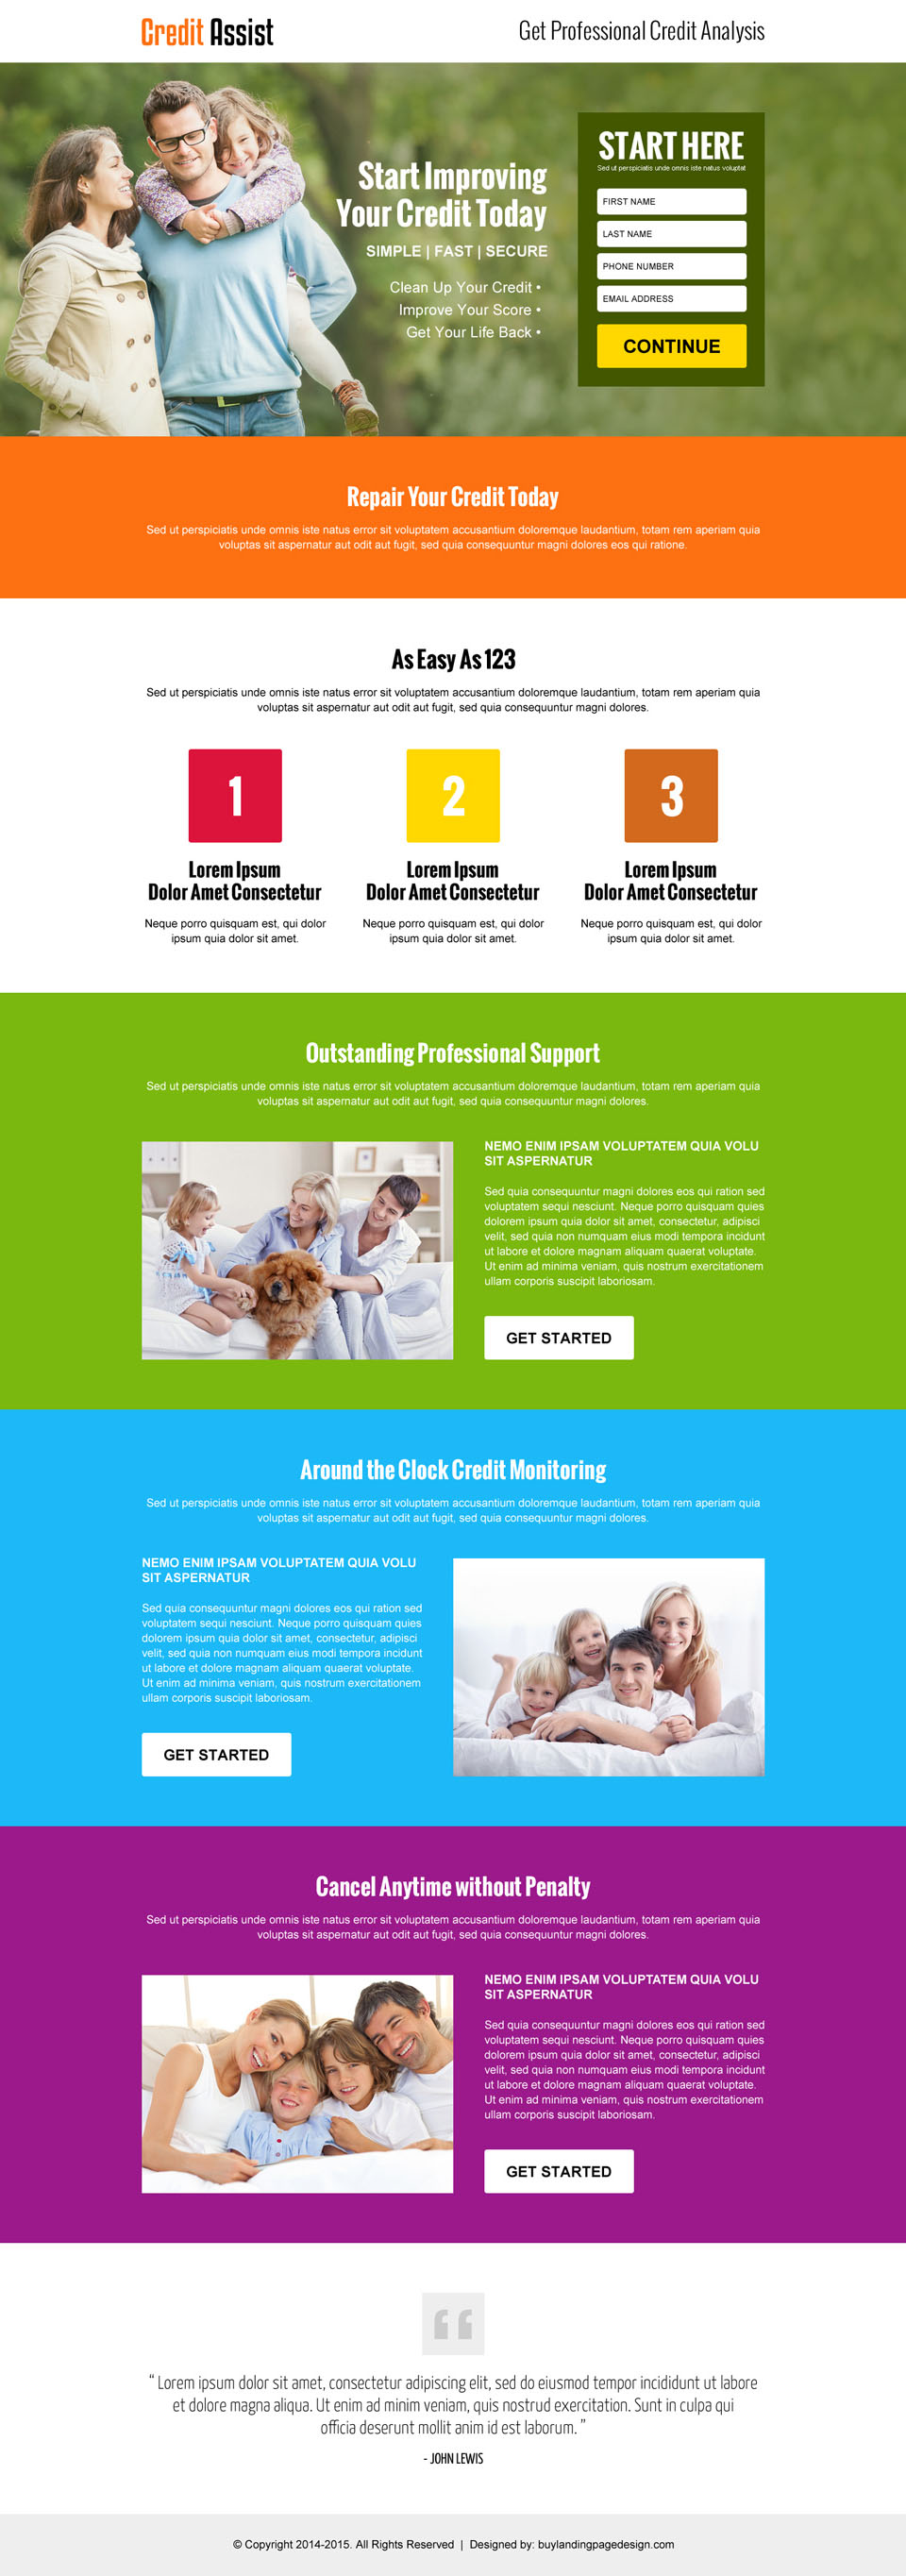 credit-analysis-service-lead-genration-best-converting-responsive-landing-page-design-template-008